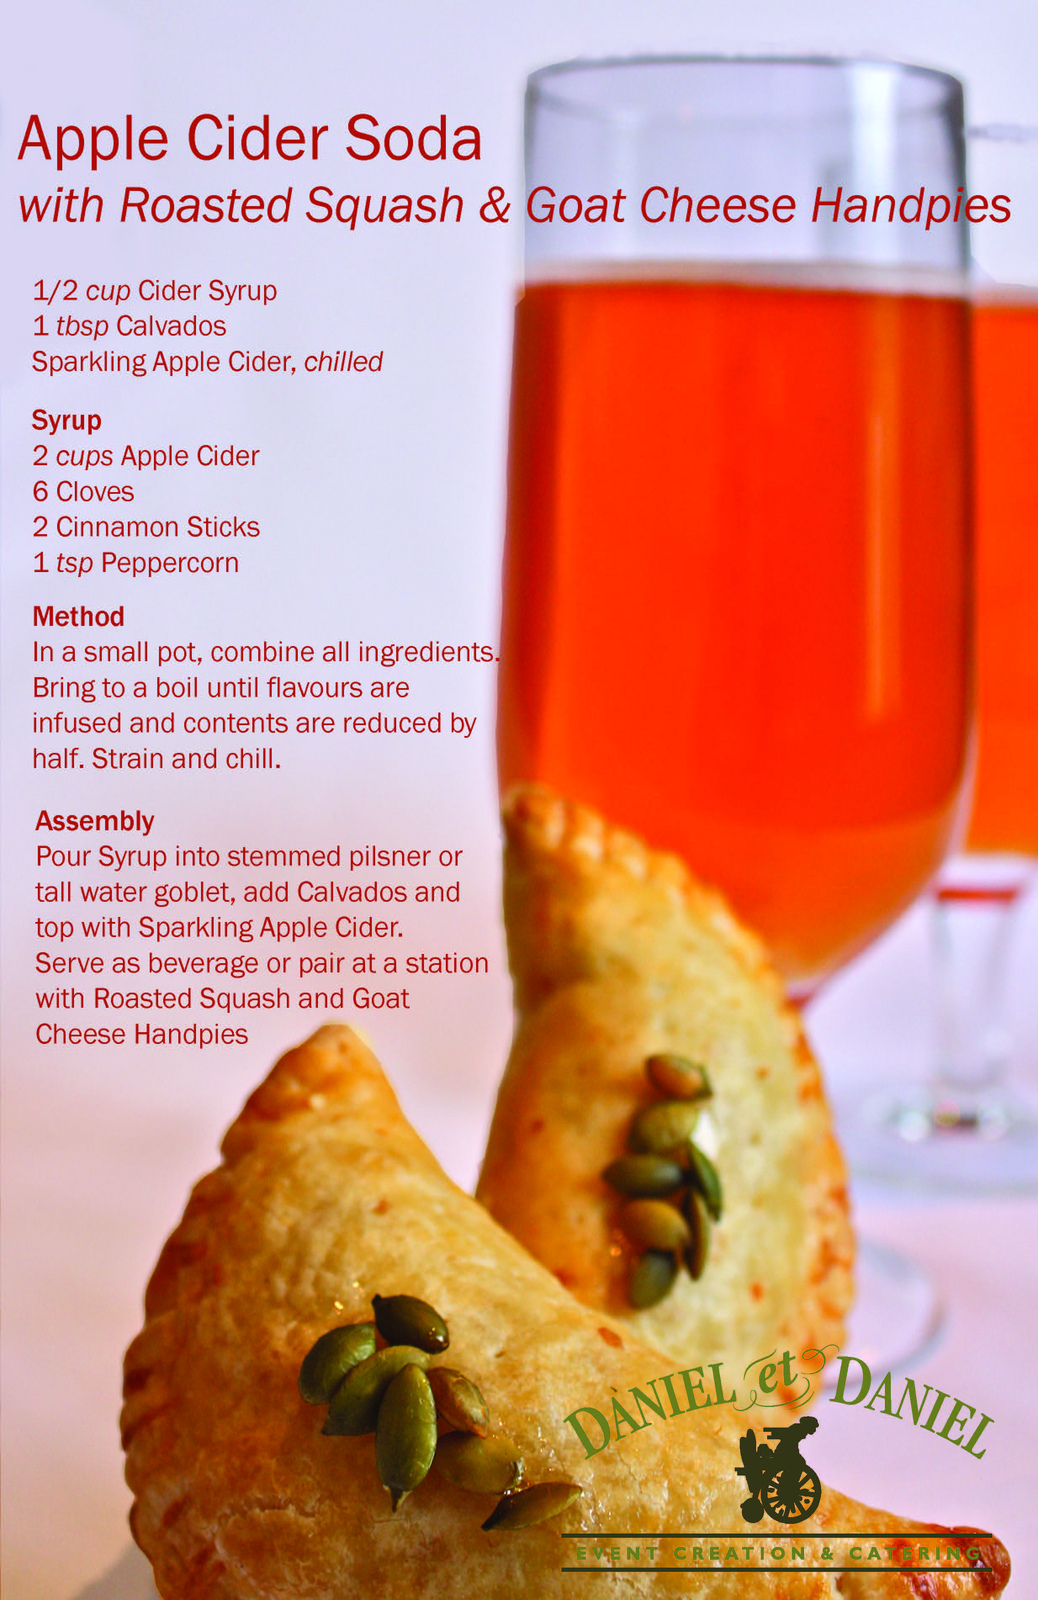 fall-duo-roasted-squash-and-goat-cheese-handpies-with-apple-cider-soda-02